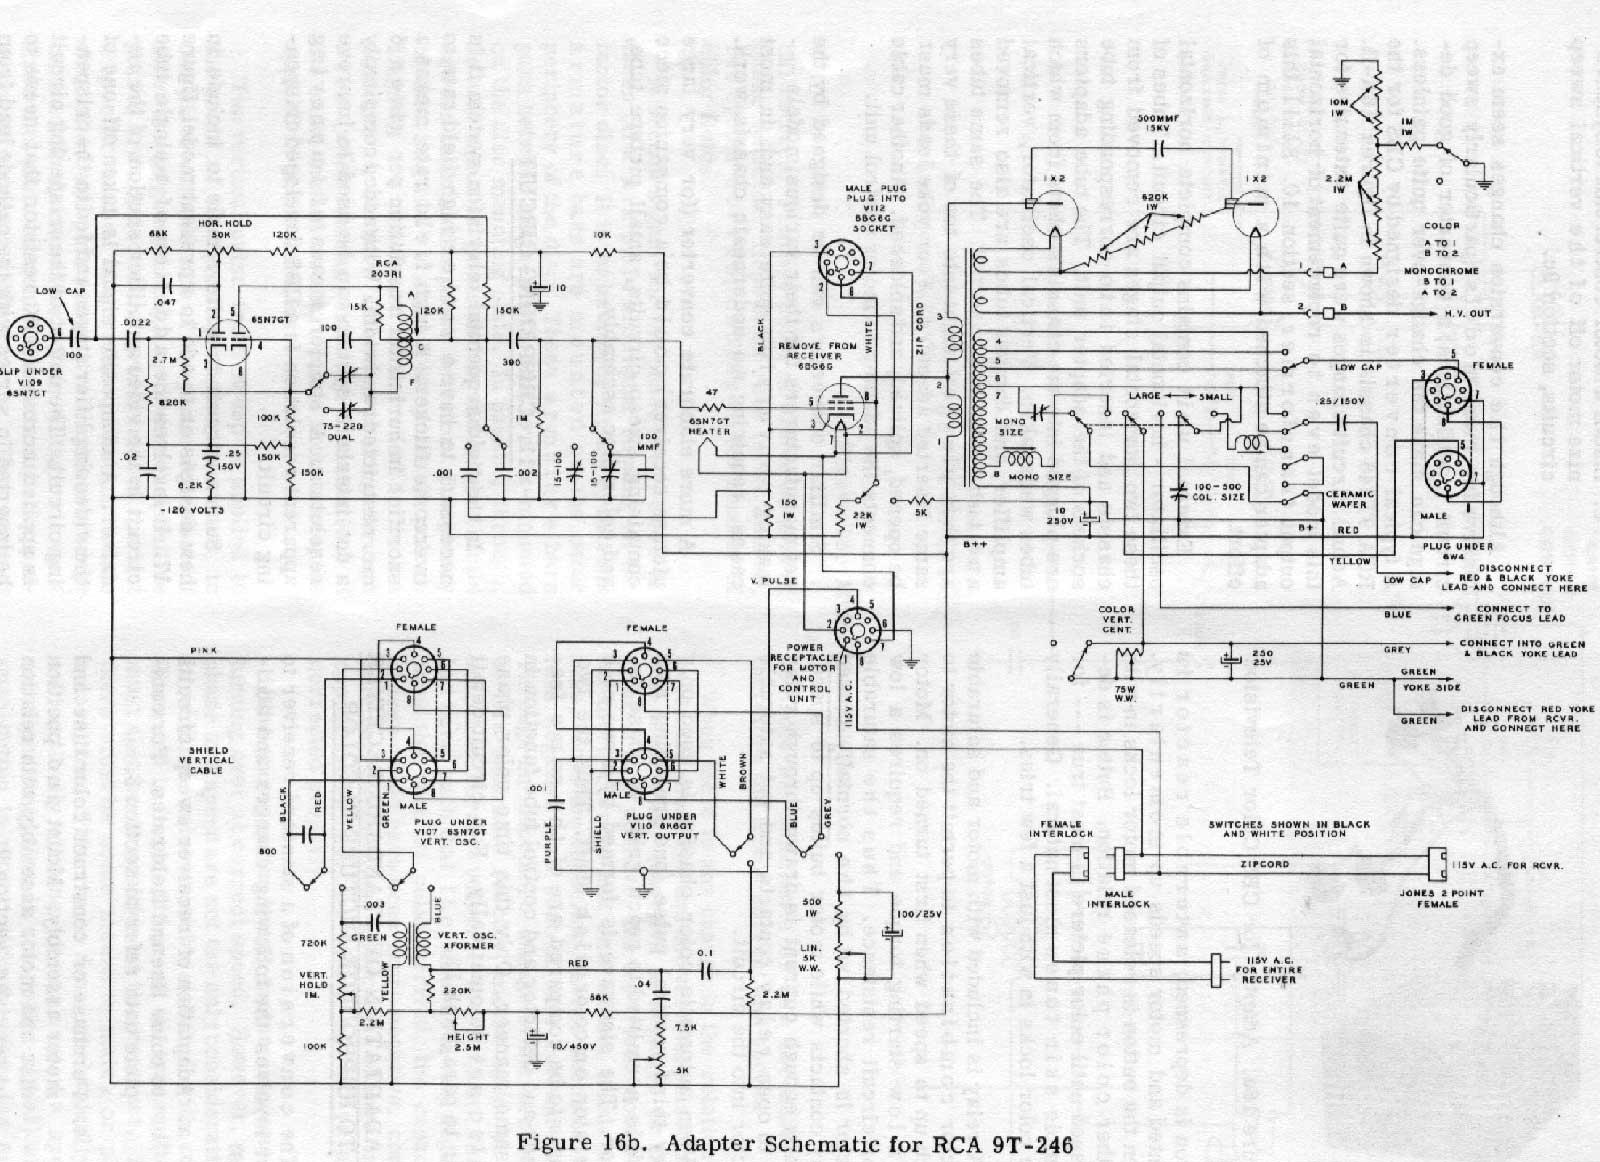 Television Technical Data Color Sets Meyer Plow Wiring Diagram 68 Rx 41 Adapter Schematic 35